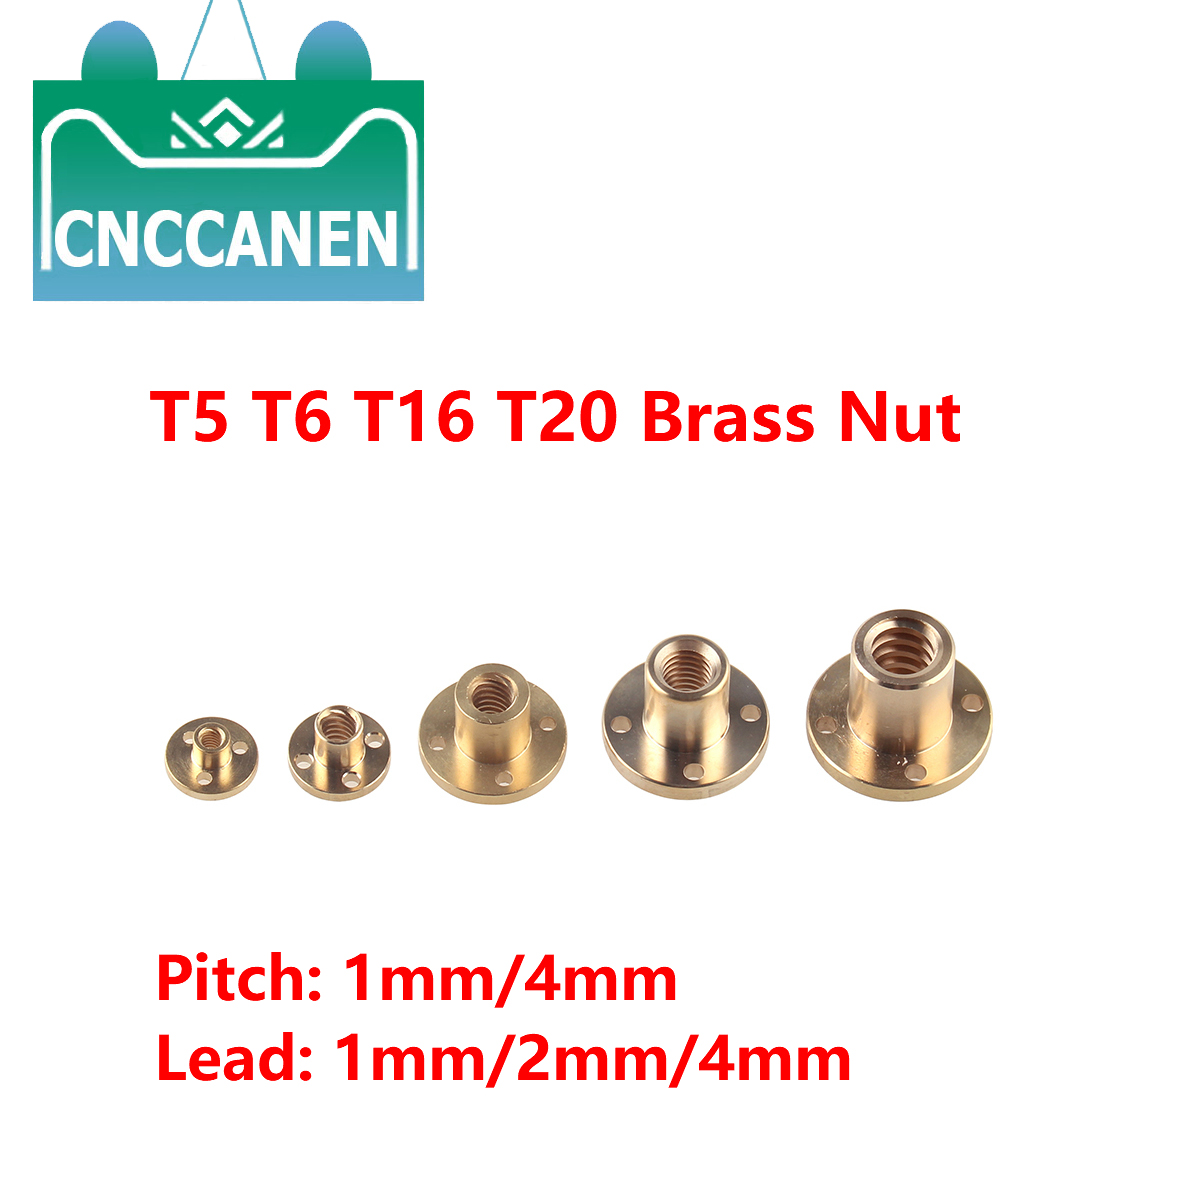 T5 T6 T16 T20 Leadscrew Nut Pitch 1mm/2mm Lead 1mm/2mm/4mm Brass Lead Screw Nut For CNC Parts 3D Printer Accessories